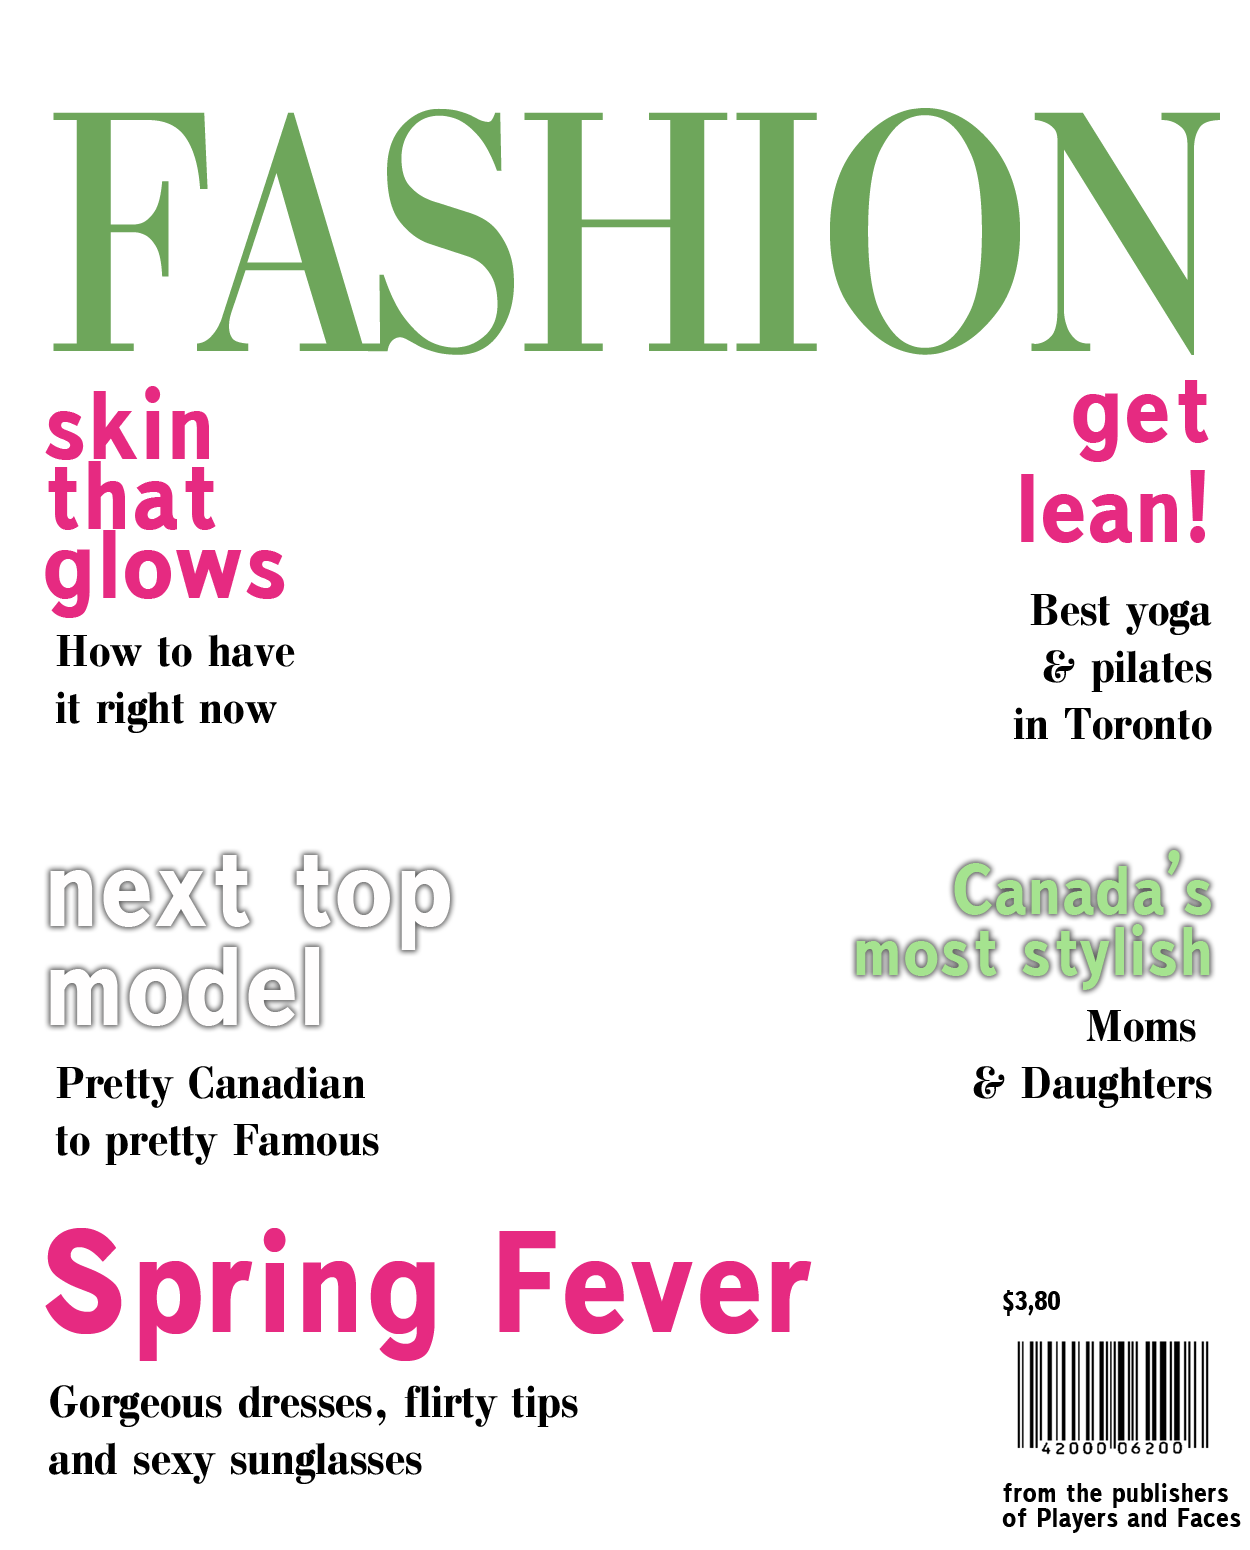 001 Fake Magazine Cover Template Photoshop Unforgettable.